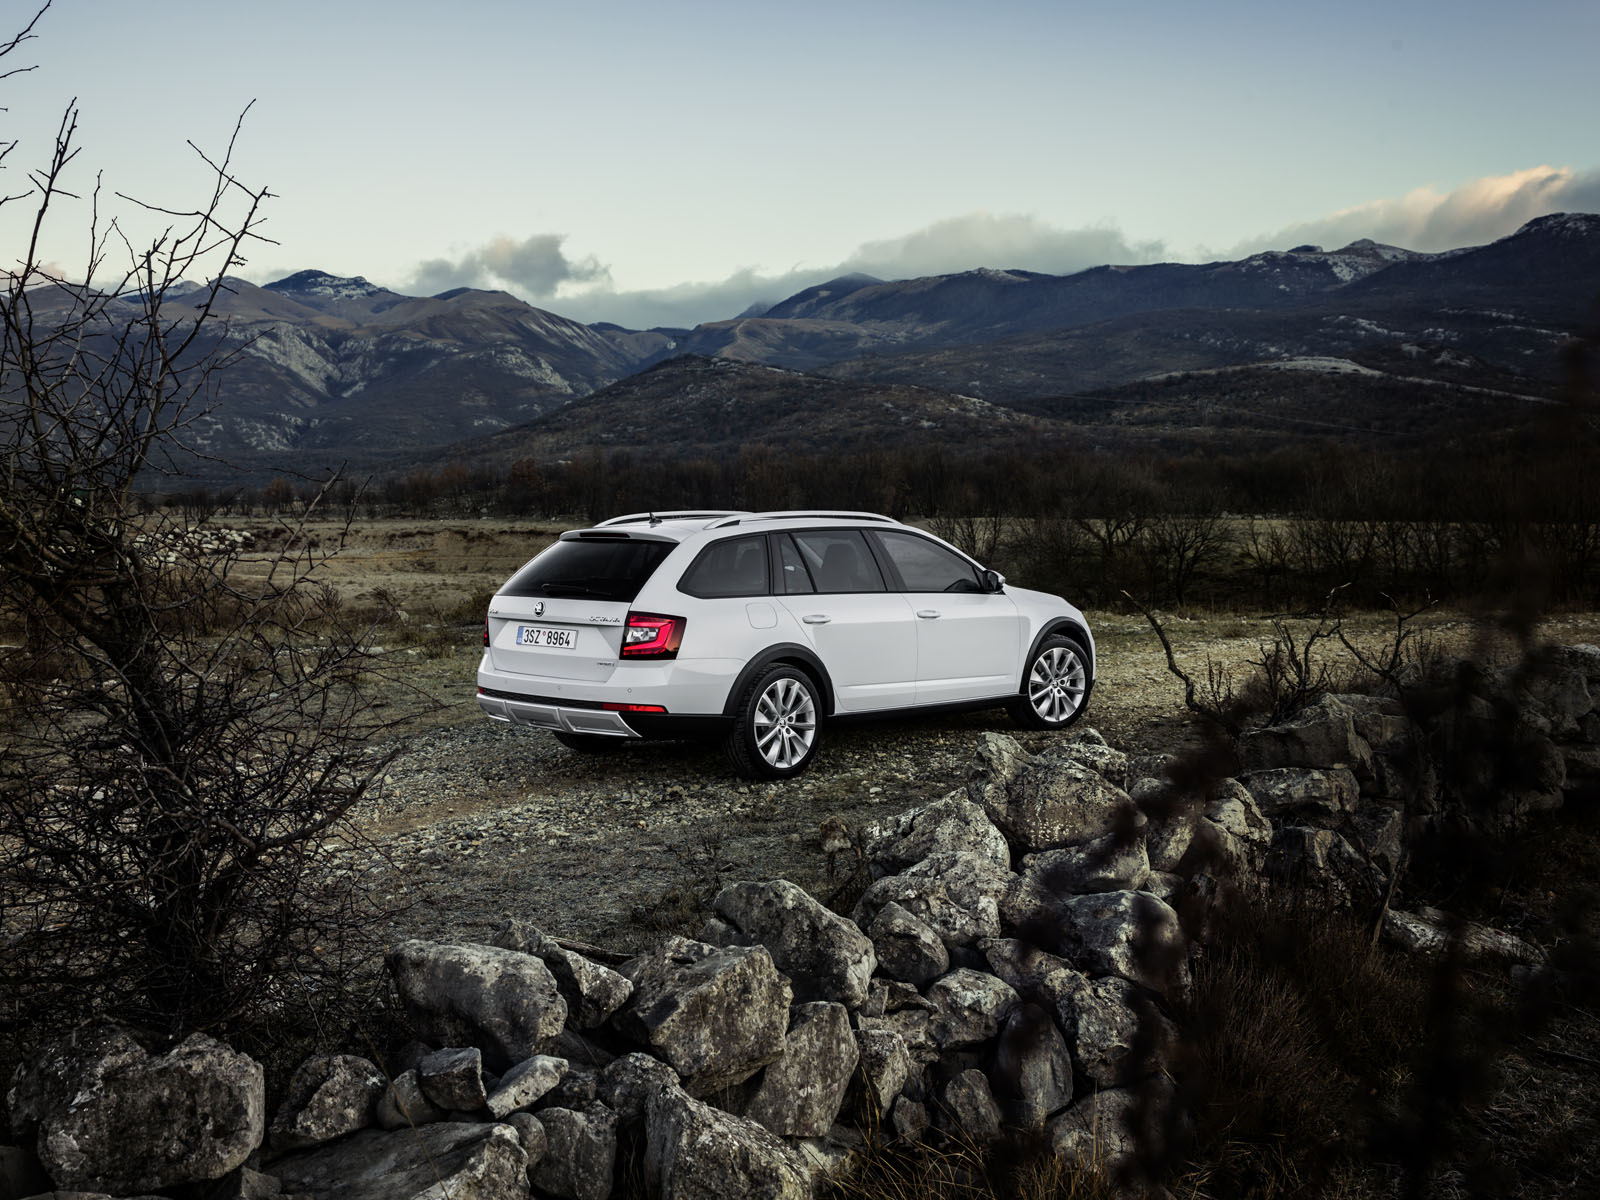 new scout model takes skoda octavia upgrades off the beaten path. Black Bedroom Furniture Sets. Home Design Ideas